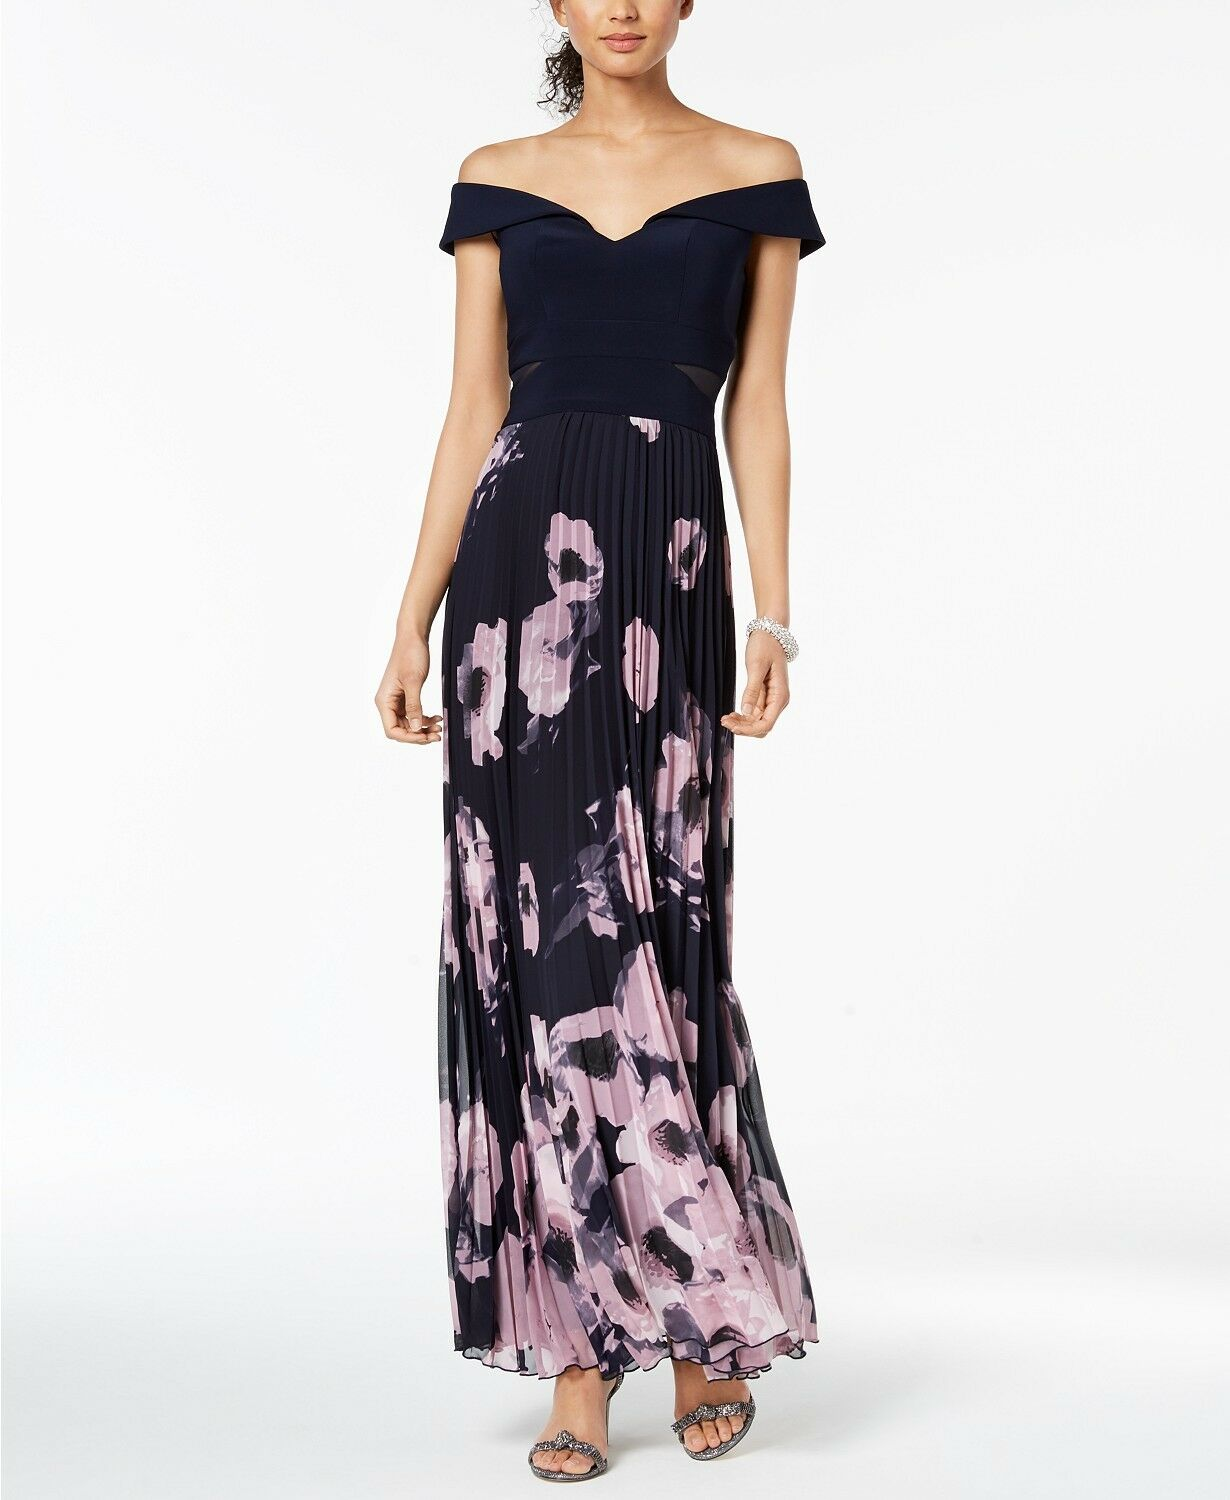 Xscape Pleated Floral Of the Shoulder Gown Größe 6  D449 MSRP